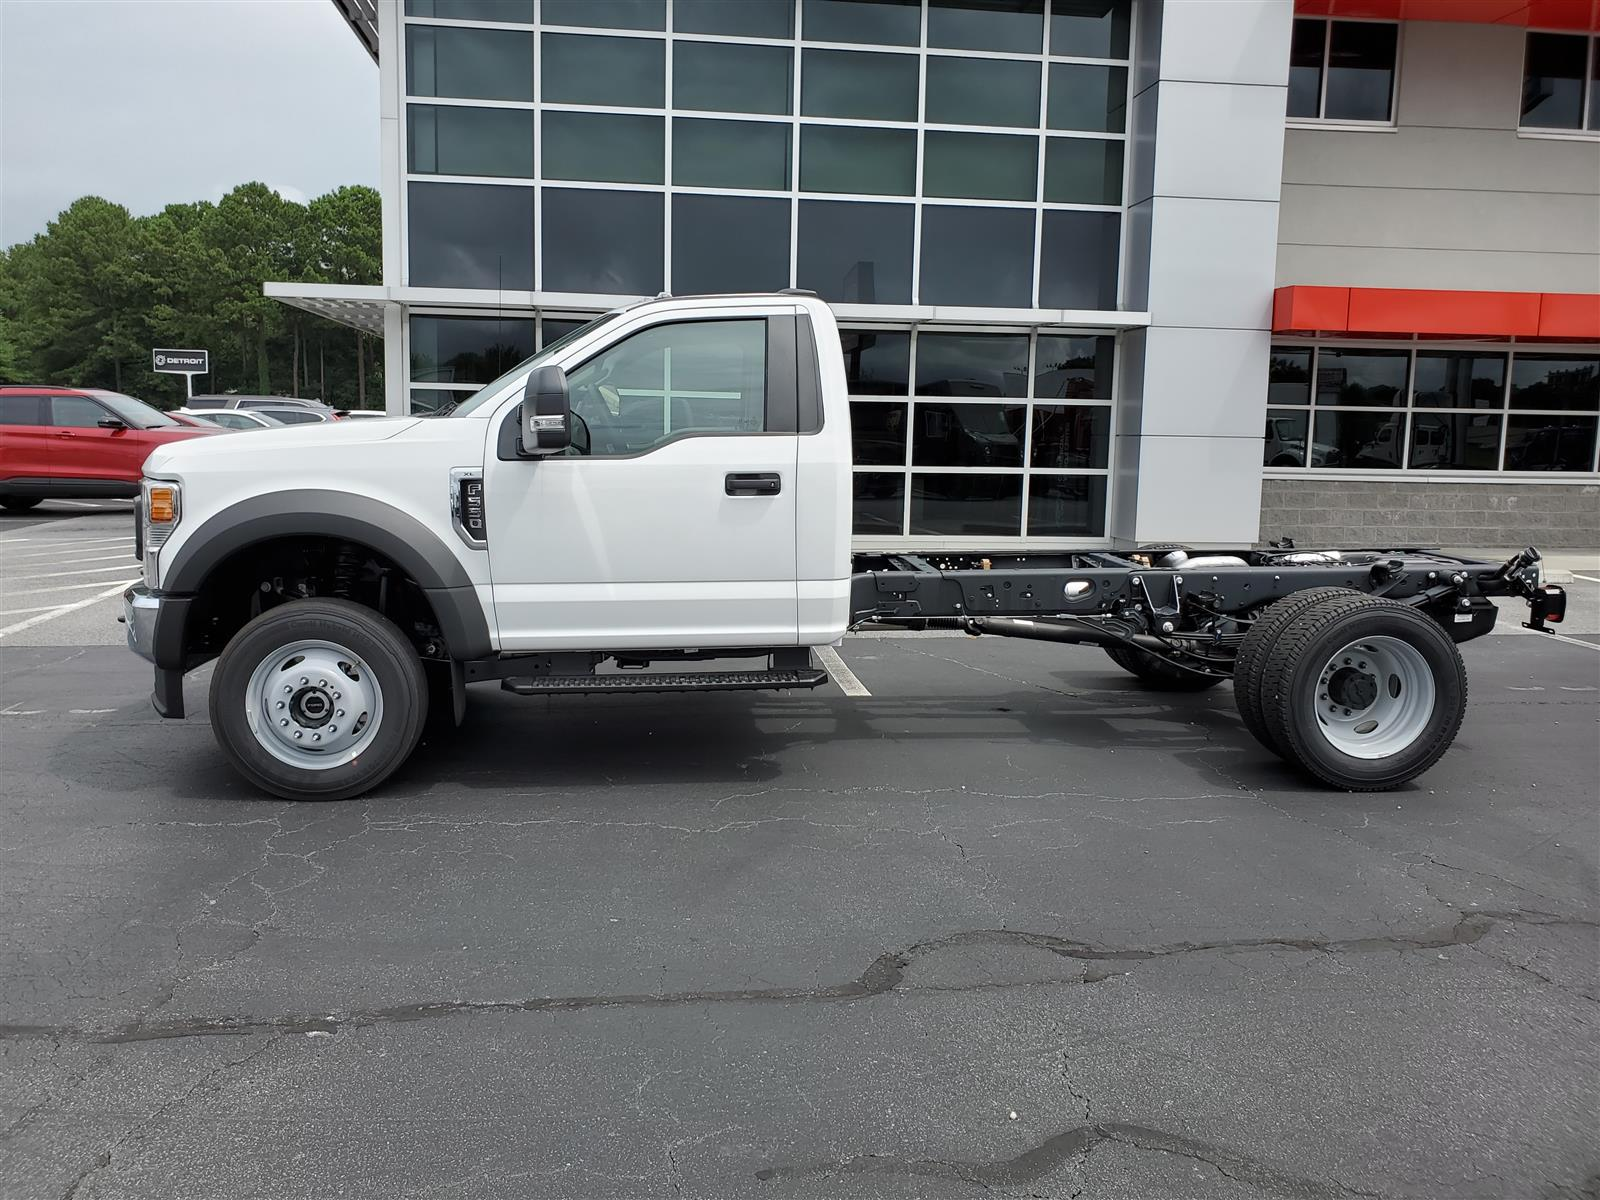 2020 Ford F-550 Regular Cab DRW 4x4, Cab Chassis #LDA06213 - photo 1